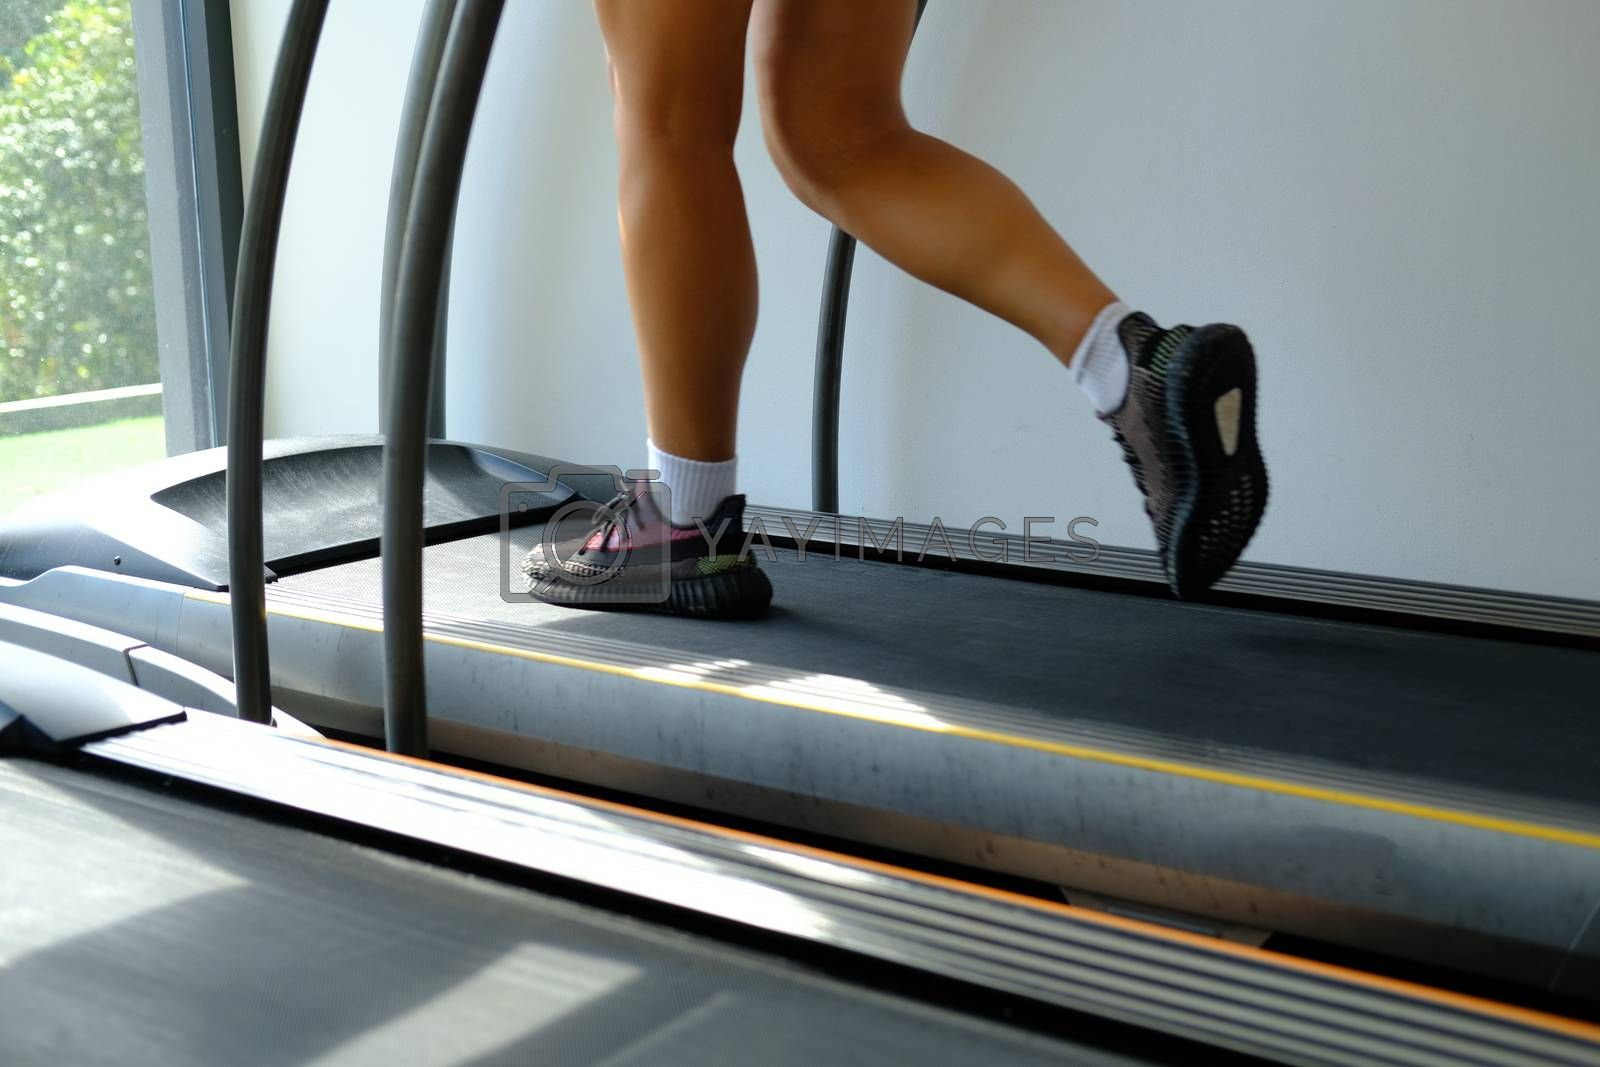 Fitness girl running on track treadmil. Health and sport concept background. Woman with muscular legs in gym workout at fitness gym.